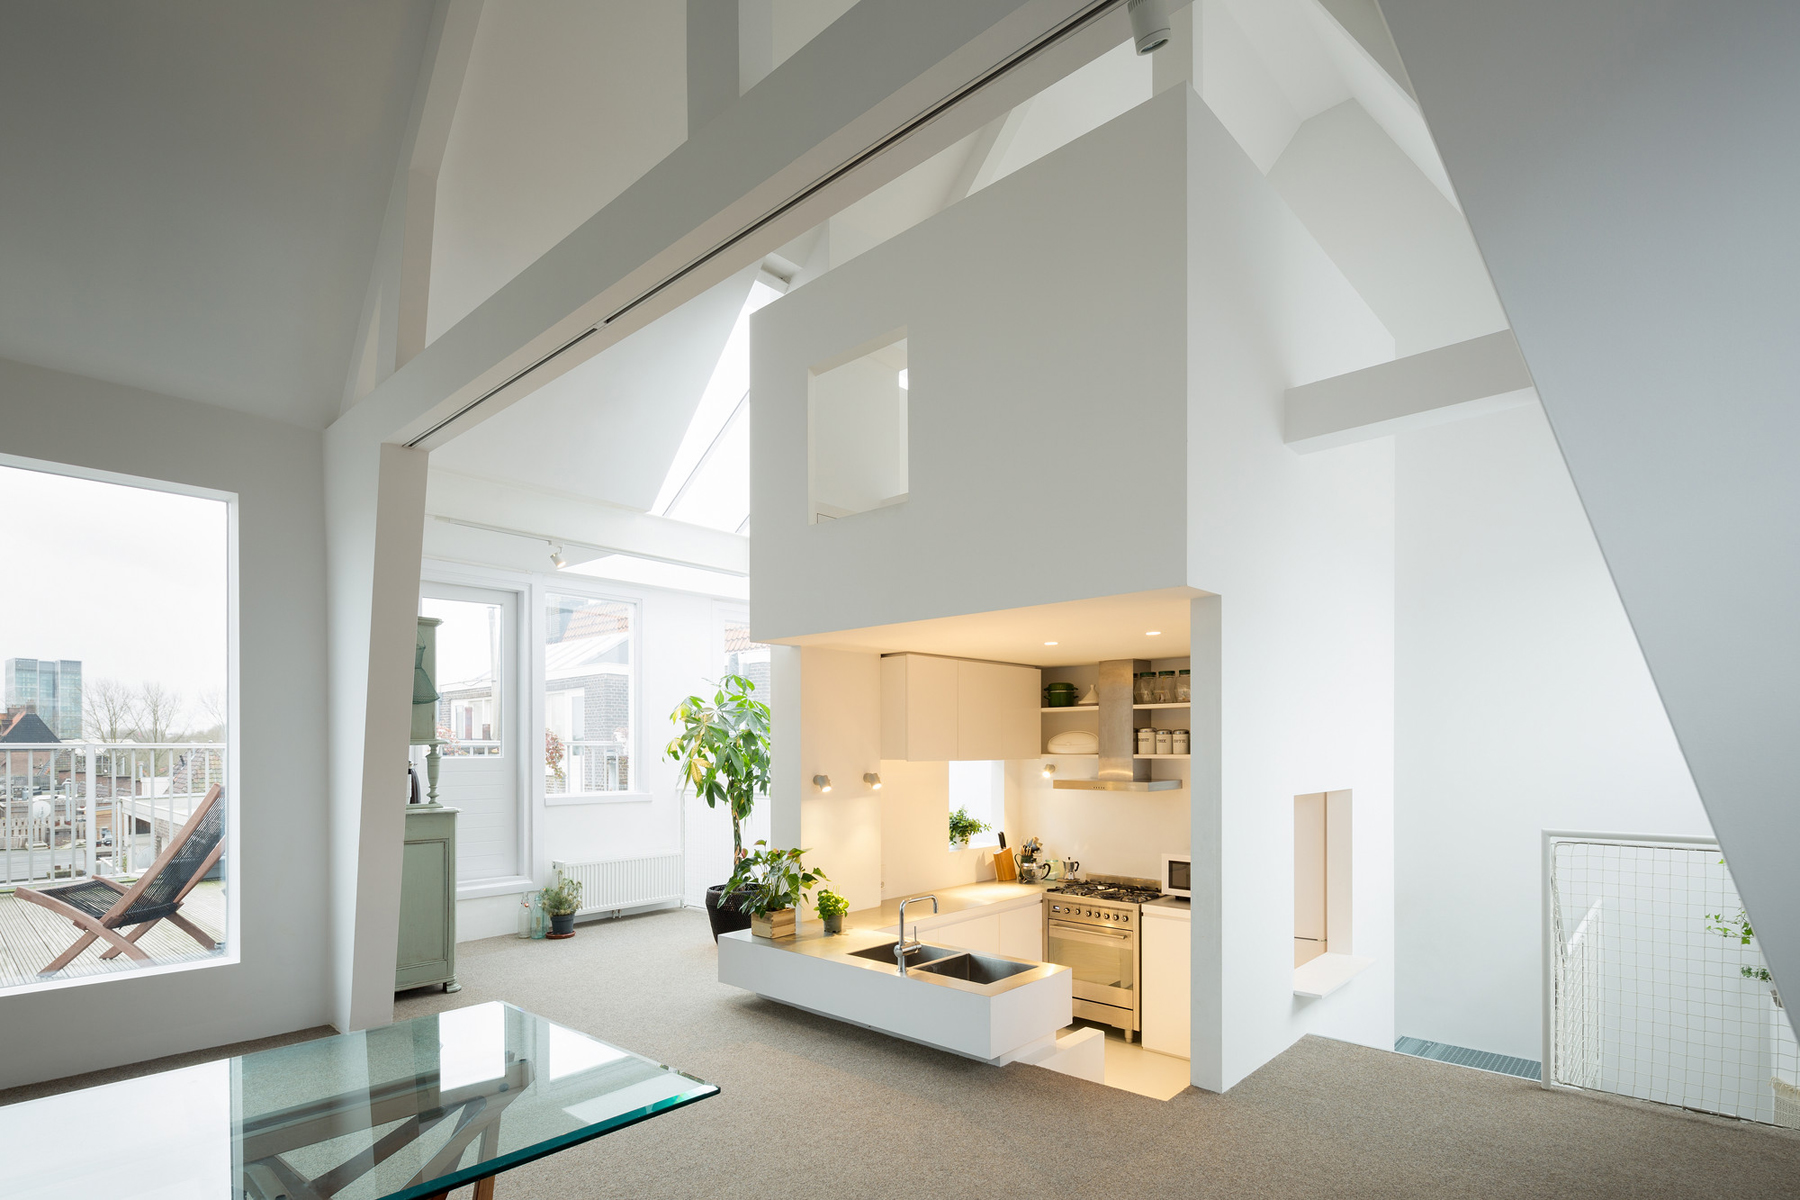 Unique modern attic duplex apartment in amsterdam with clean design idesignarch interior - Mezzanine verlichting ...